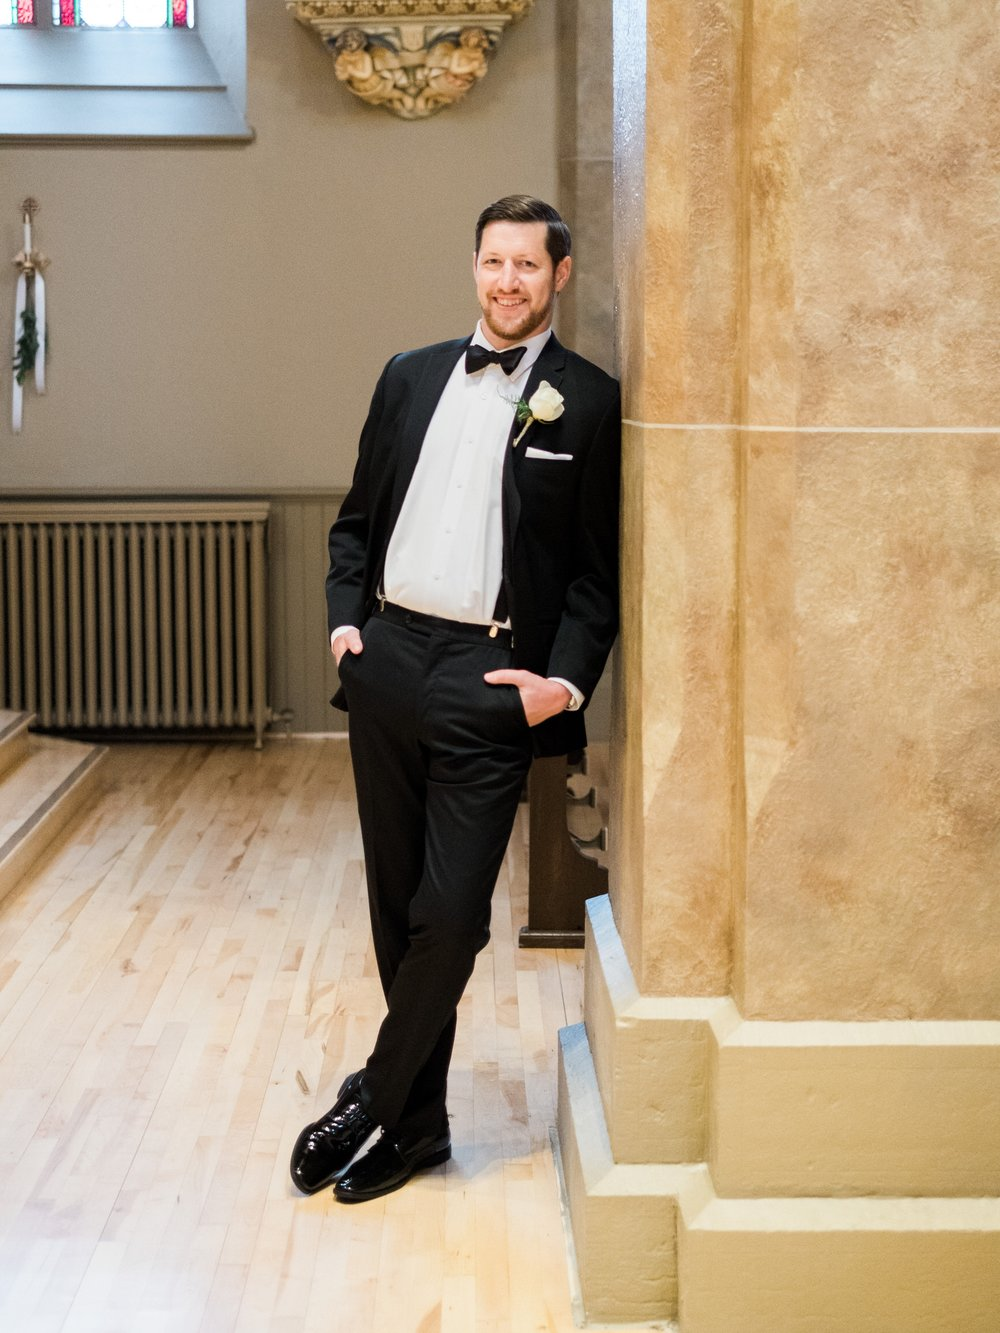 Portrait of the groom for a downtown Saint Paul wedding.